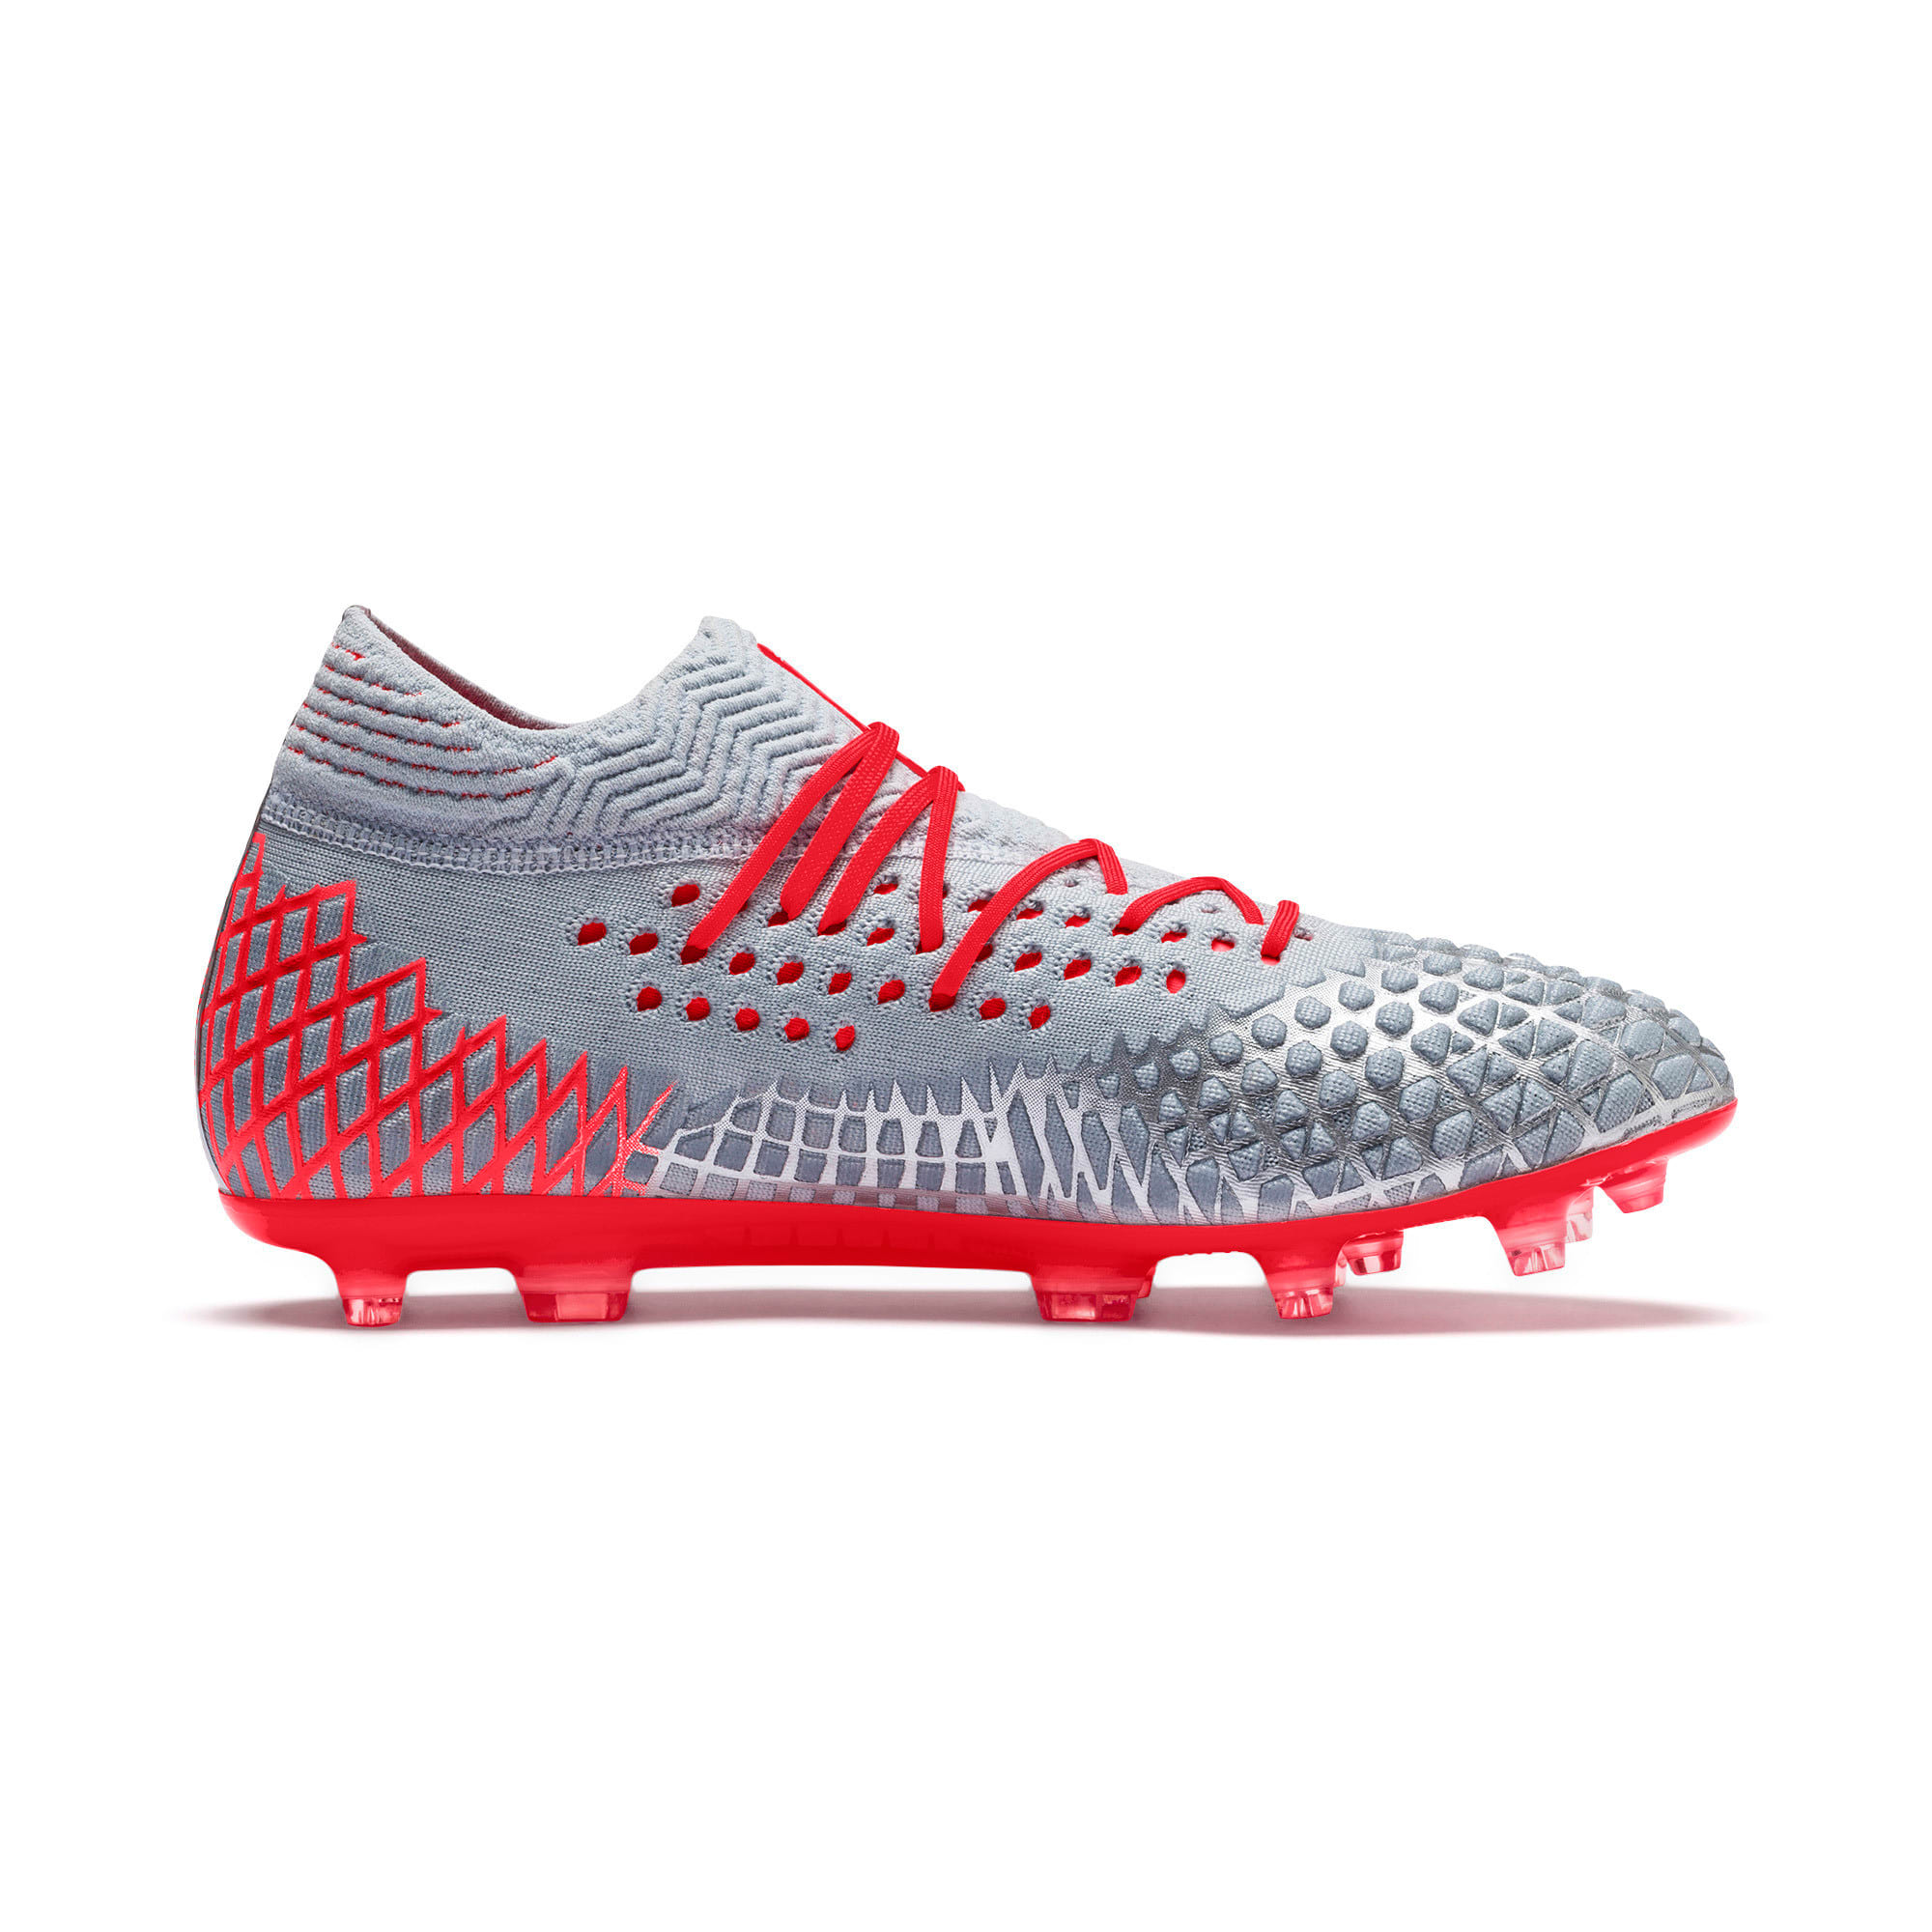 Thumbnail 6 of FUTURE 4.1 NETFIT FG/AG Men's Soccer Cleats, Blue-Nrgy Red-High Risk Red, medium